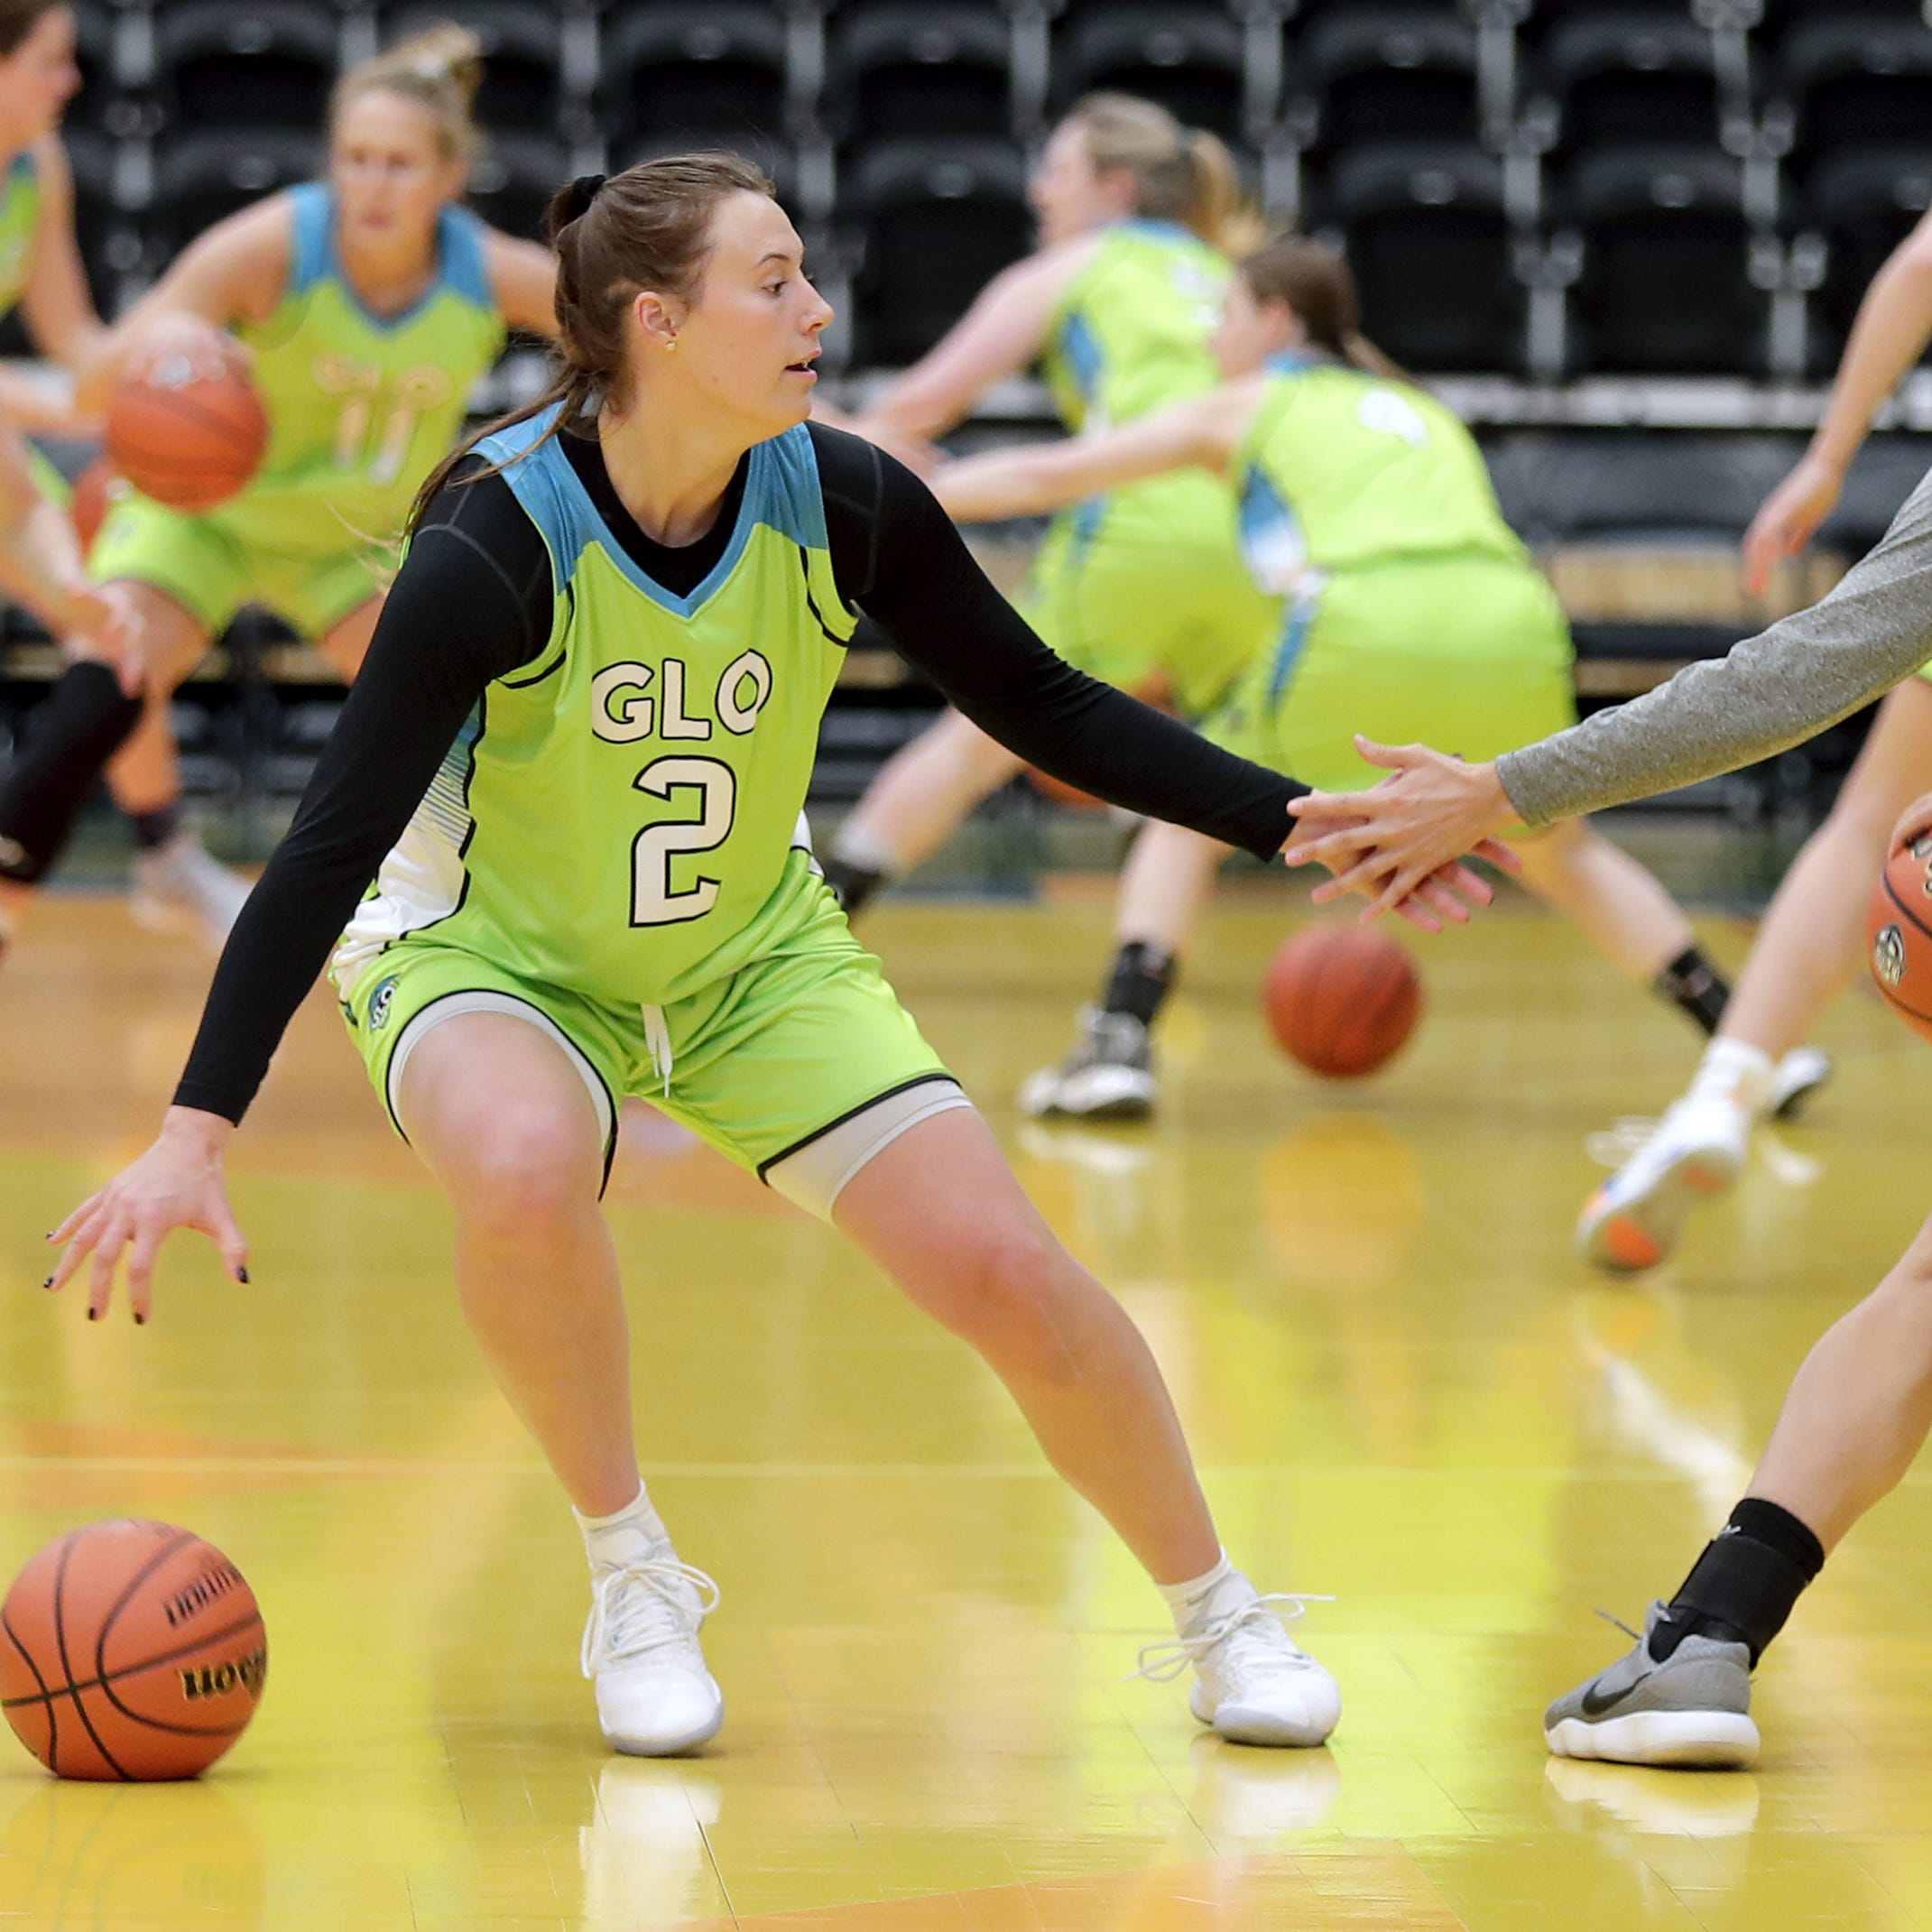 Wisconsin Glo, a new women's professional basketball team, debuts Friday in Oshkosh